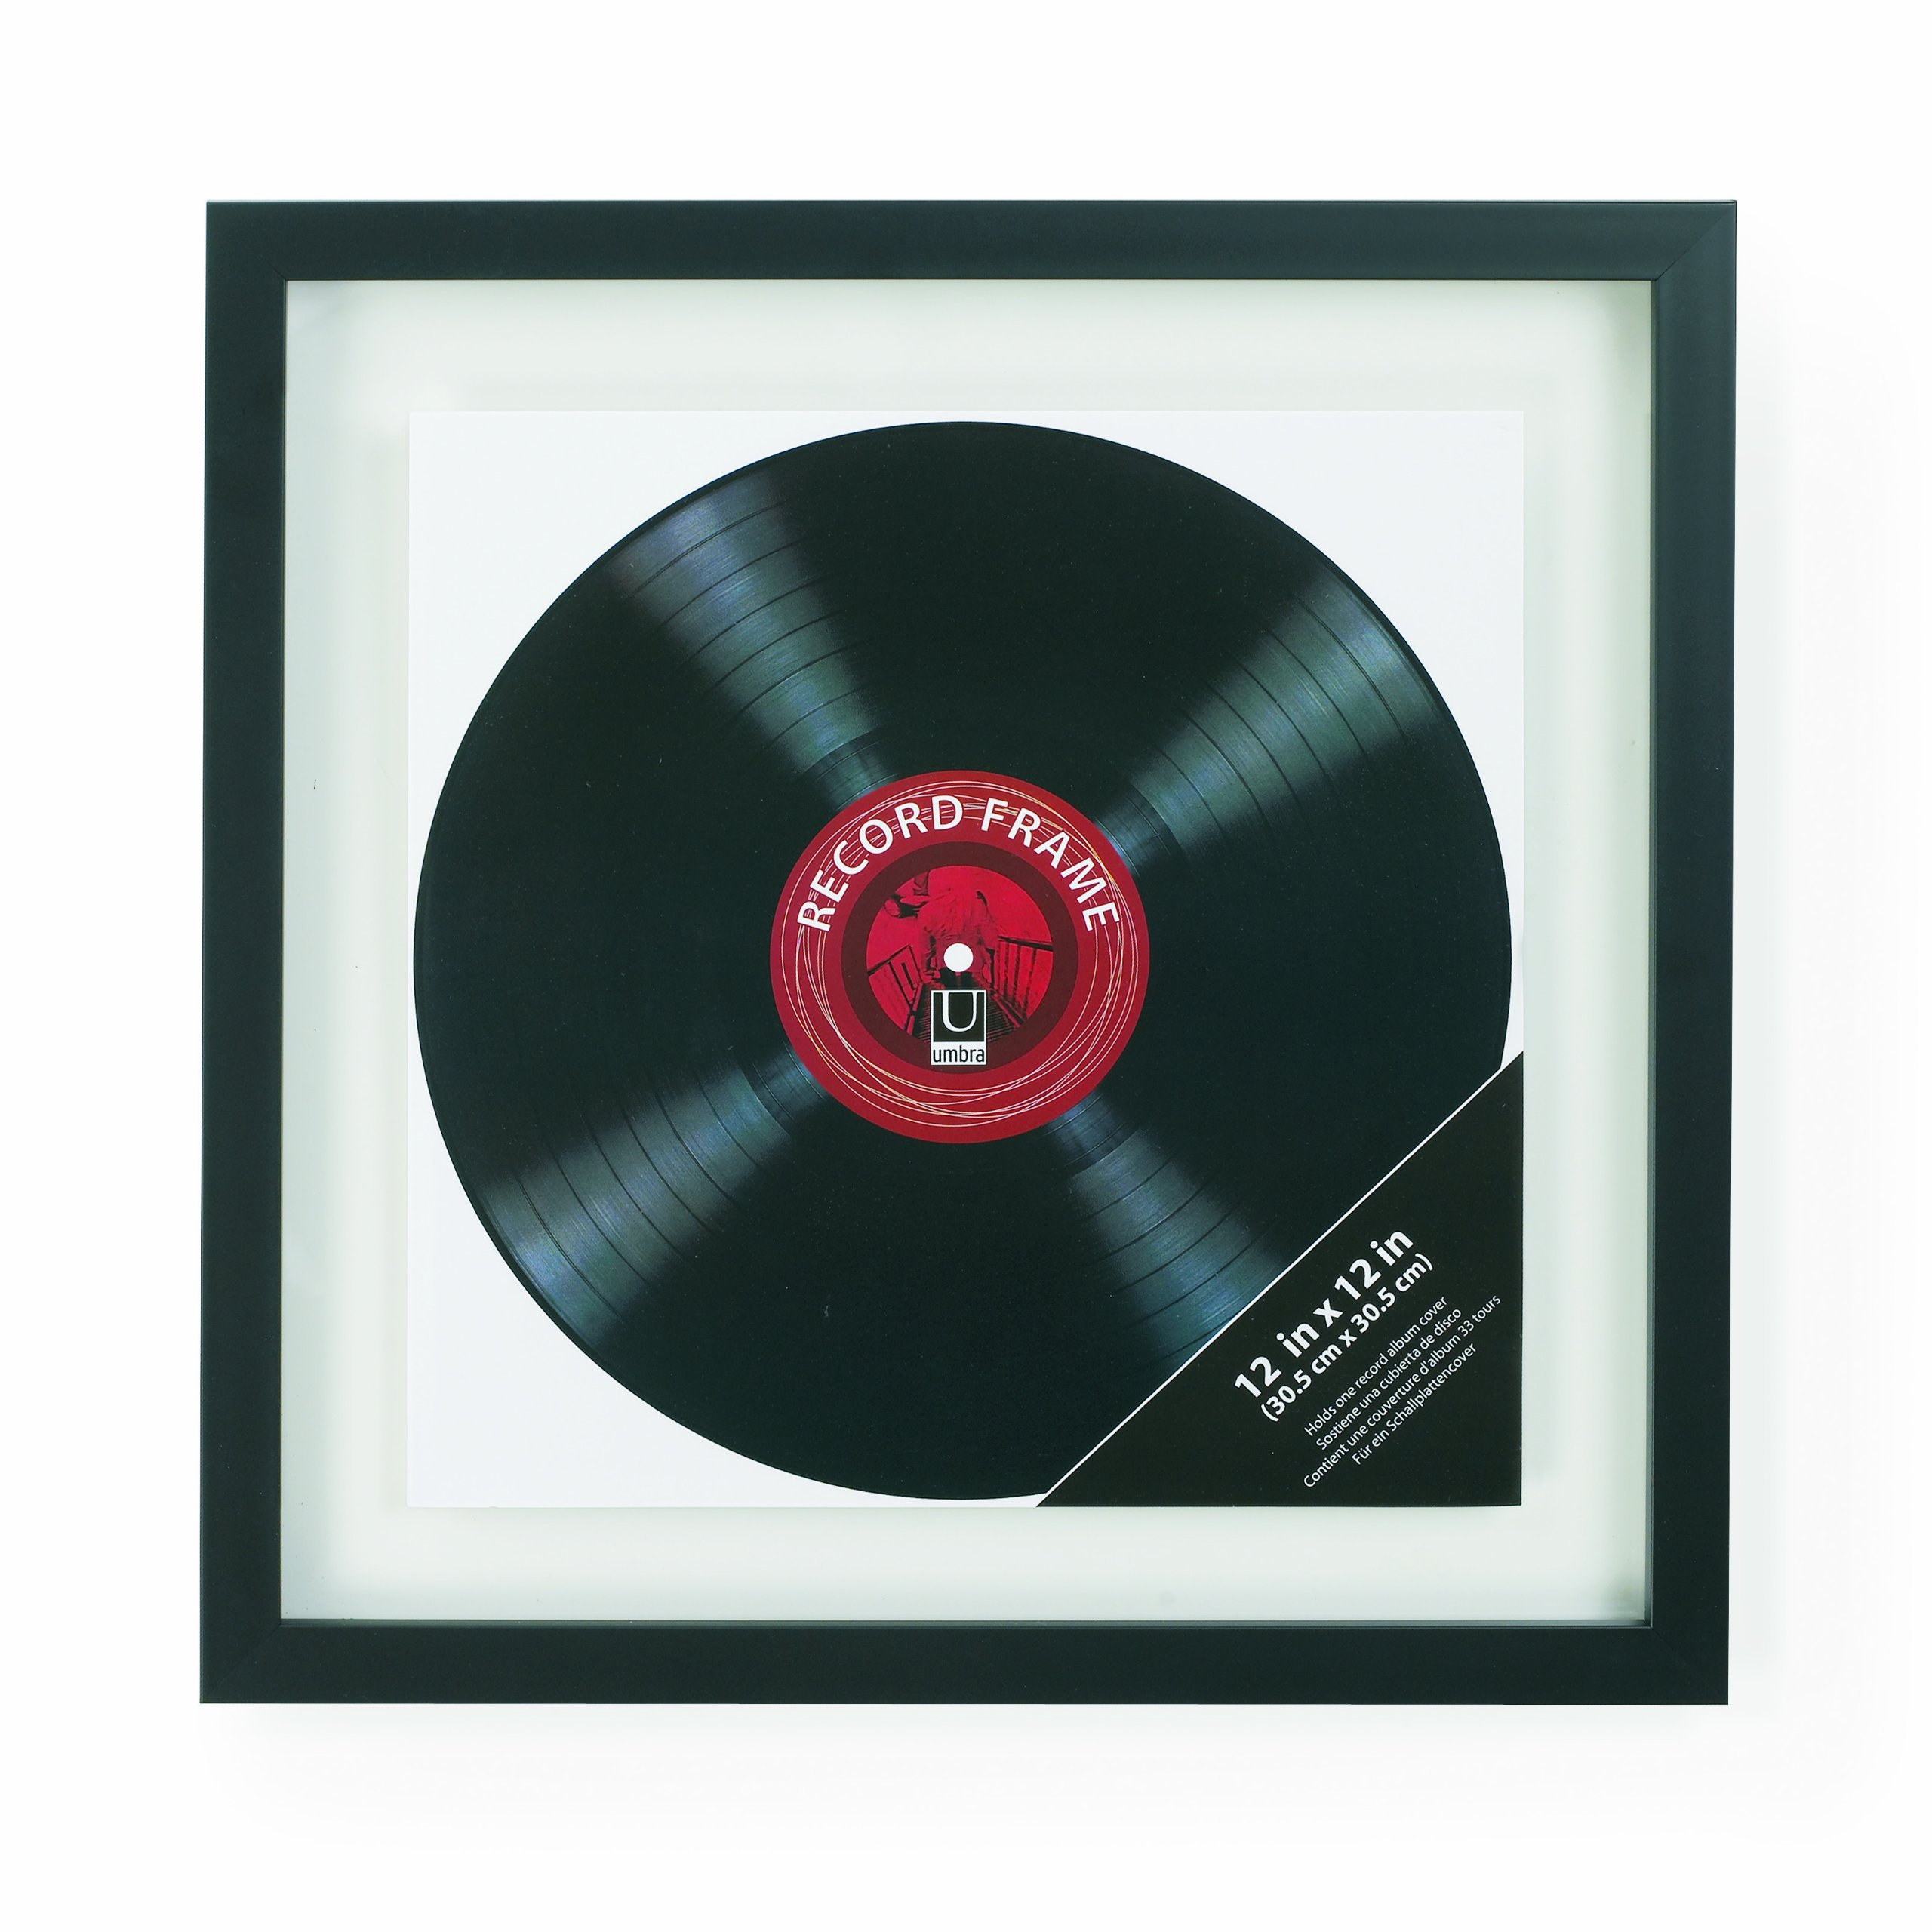 Umbra Record Album Frame 14-1/2x14-1/2-Inch, Modern Picture Frame Designed to Display a Floating 12-Inch by 12-Inch Album Cover by Umbra